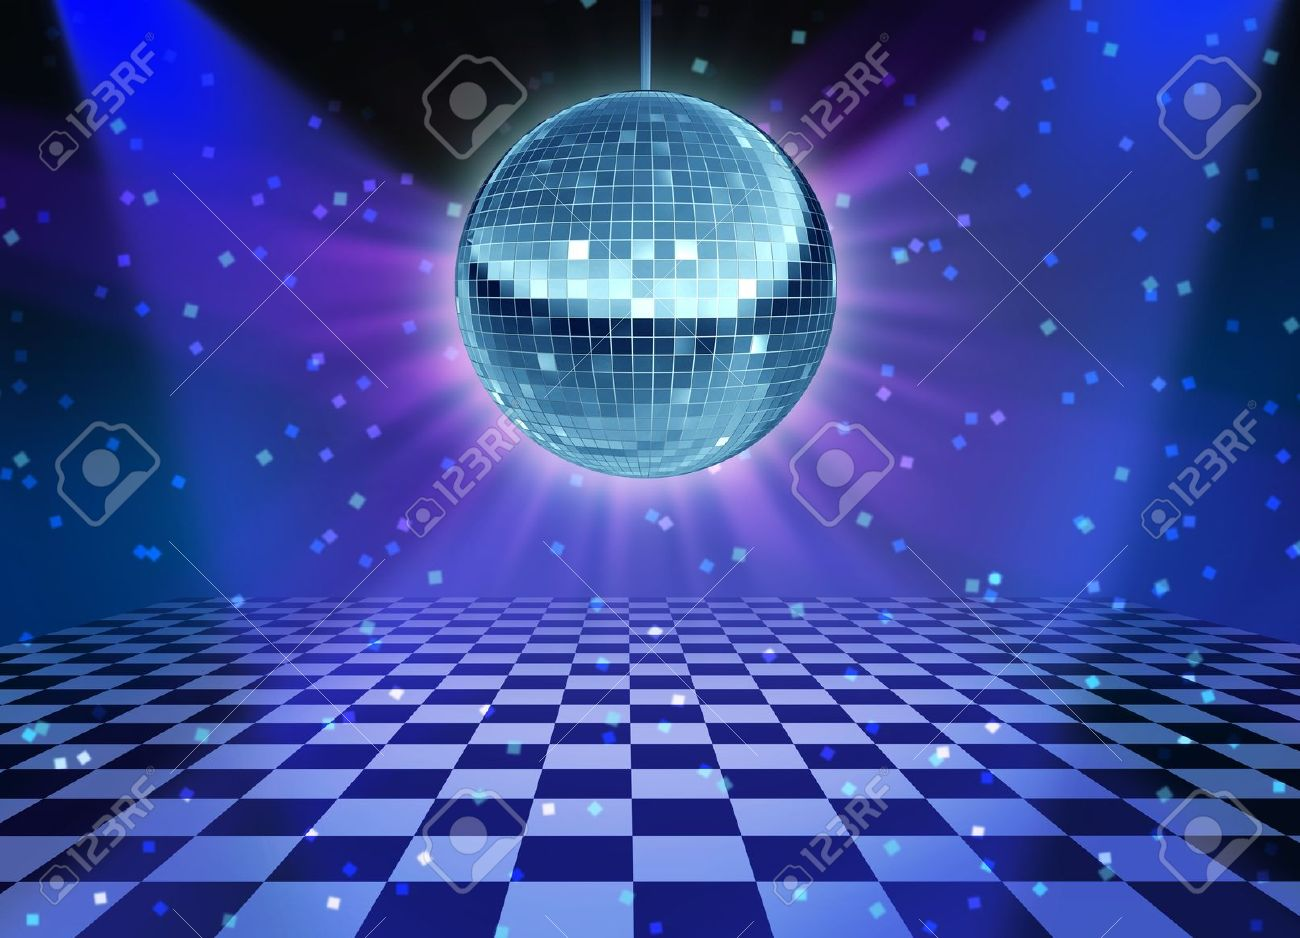 Dance floor disco night with a mirror ball symbol of fun and dancing party in a nightclub or dance club with glowing stage lights and wall reflexions and checkered floor Stock Photo - 12353921